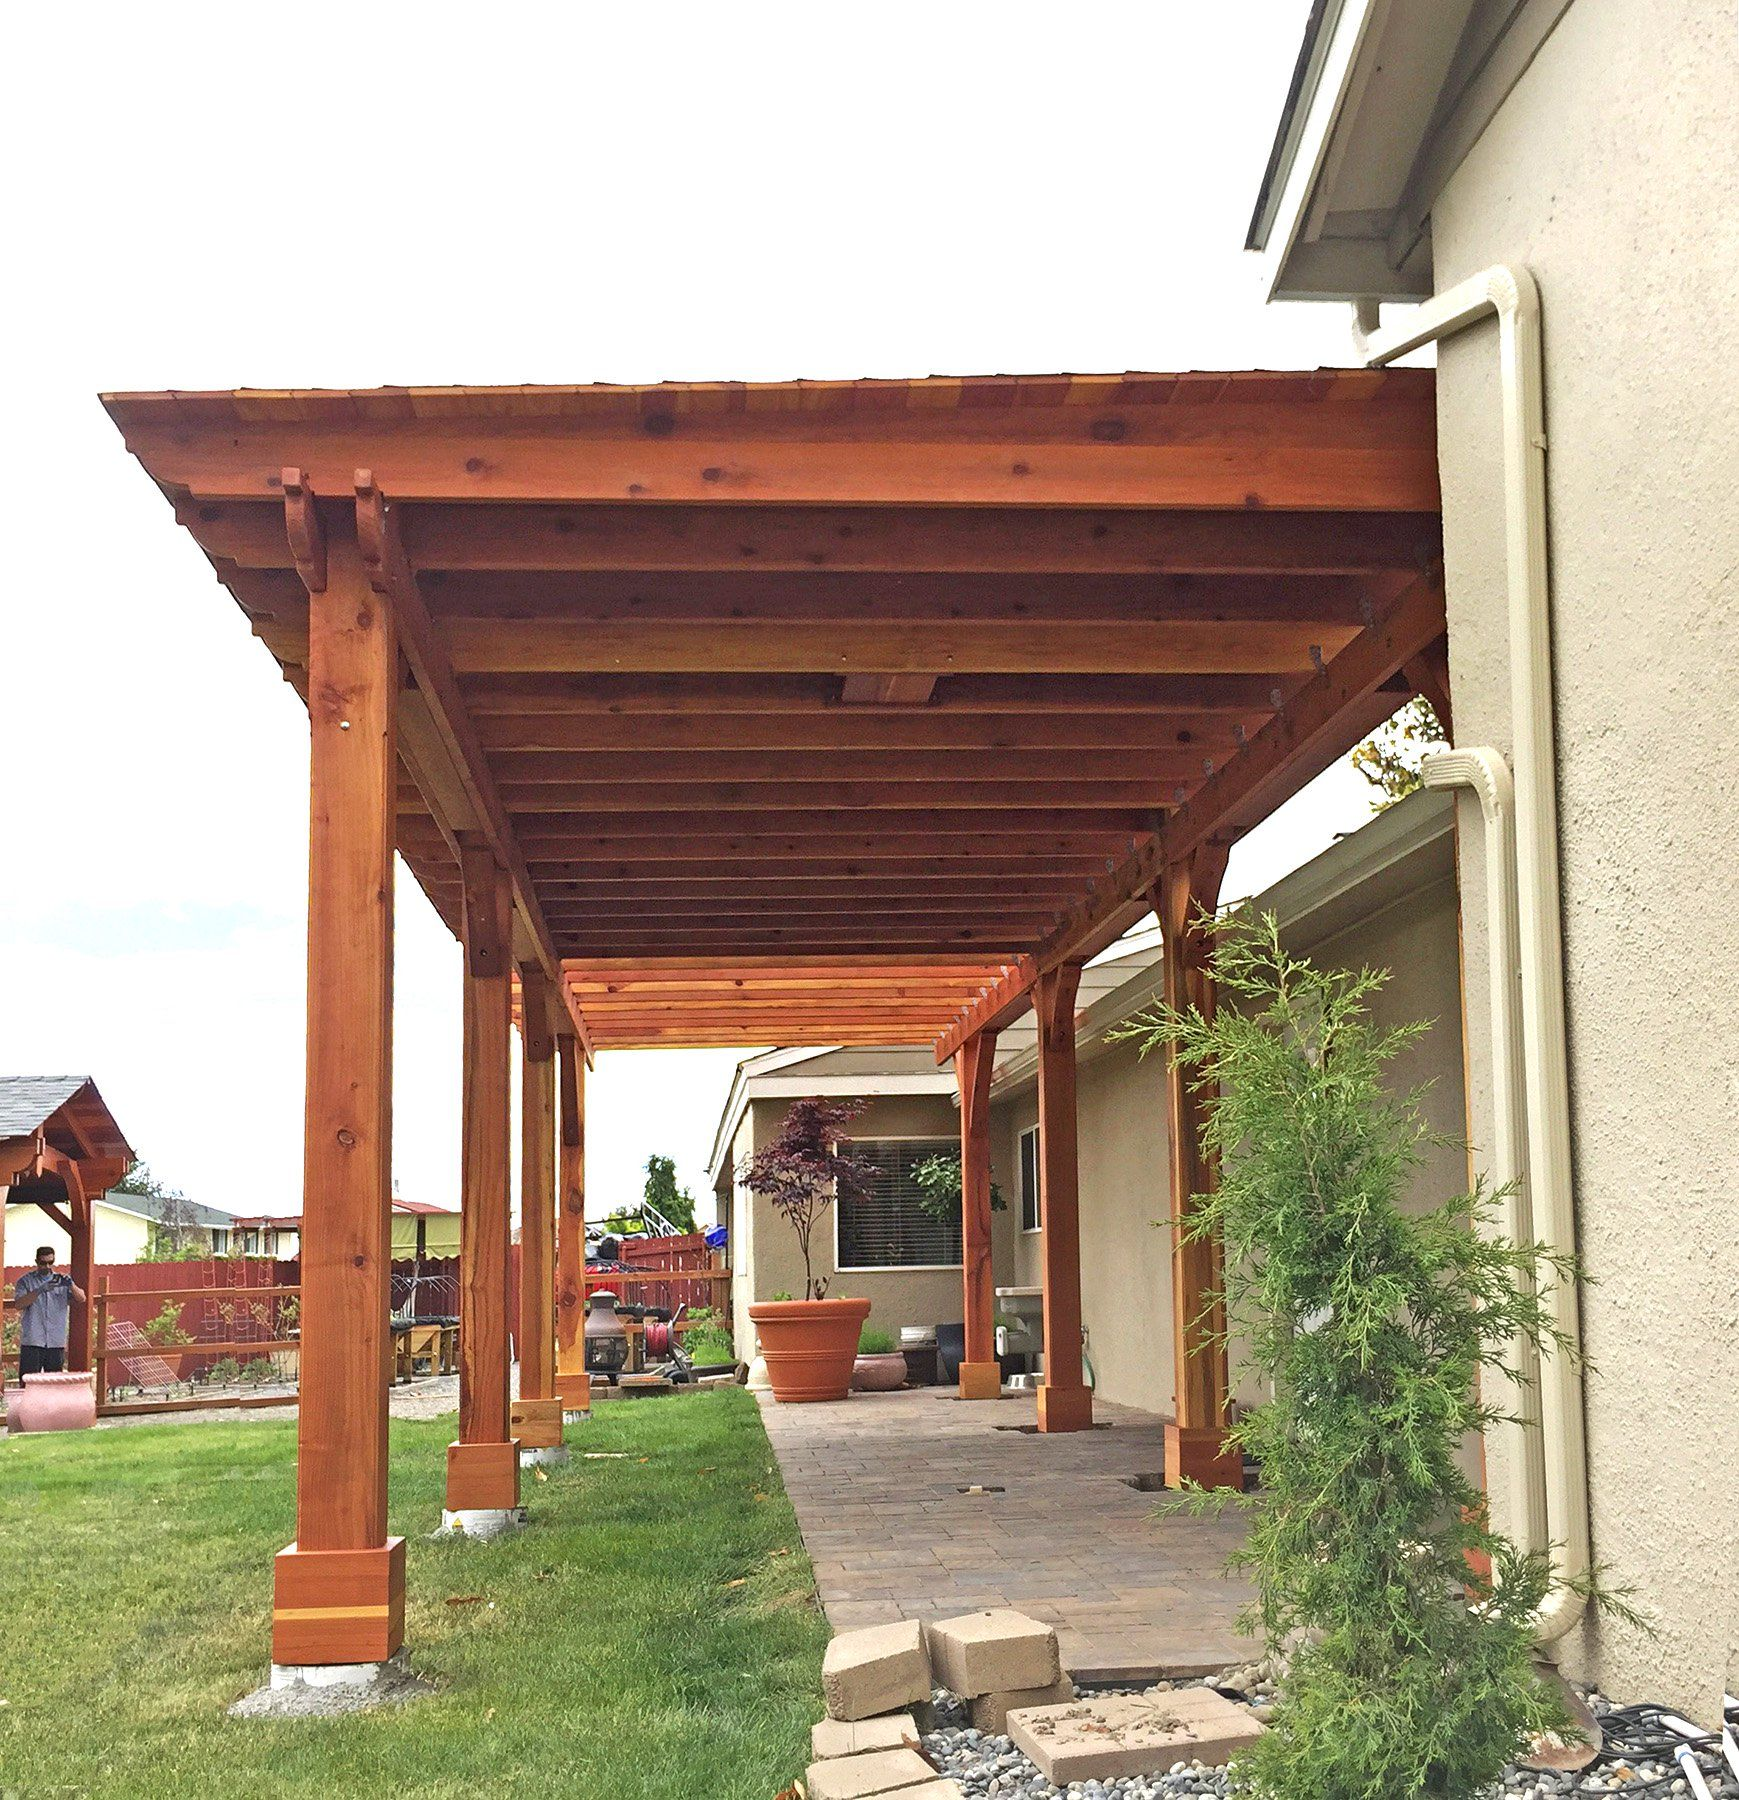 hight resolution of custom shed pavilion options 12 x 24 redwood one ceiling fan base electrical wiring trim kit for 1 post gale wind anchors for 8 posts